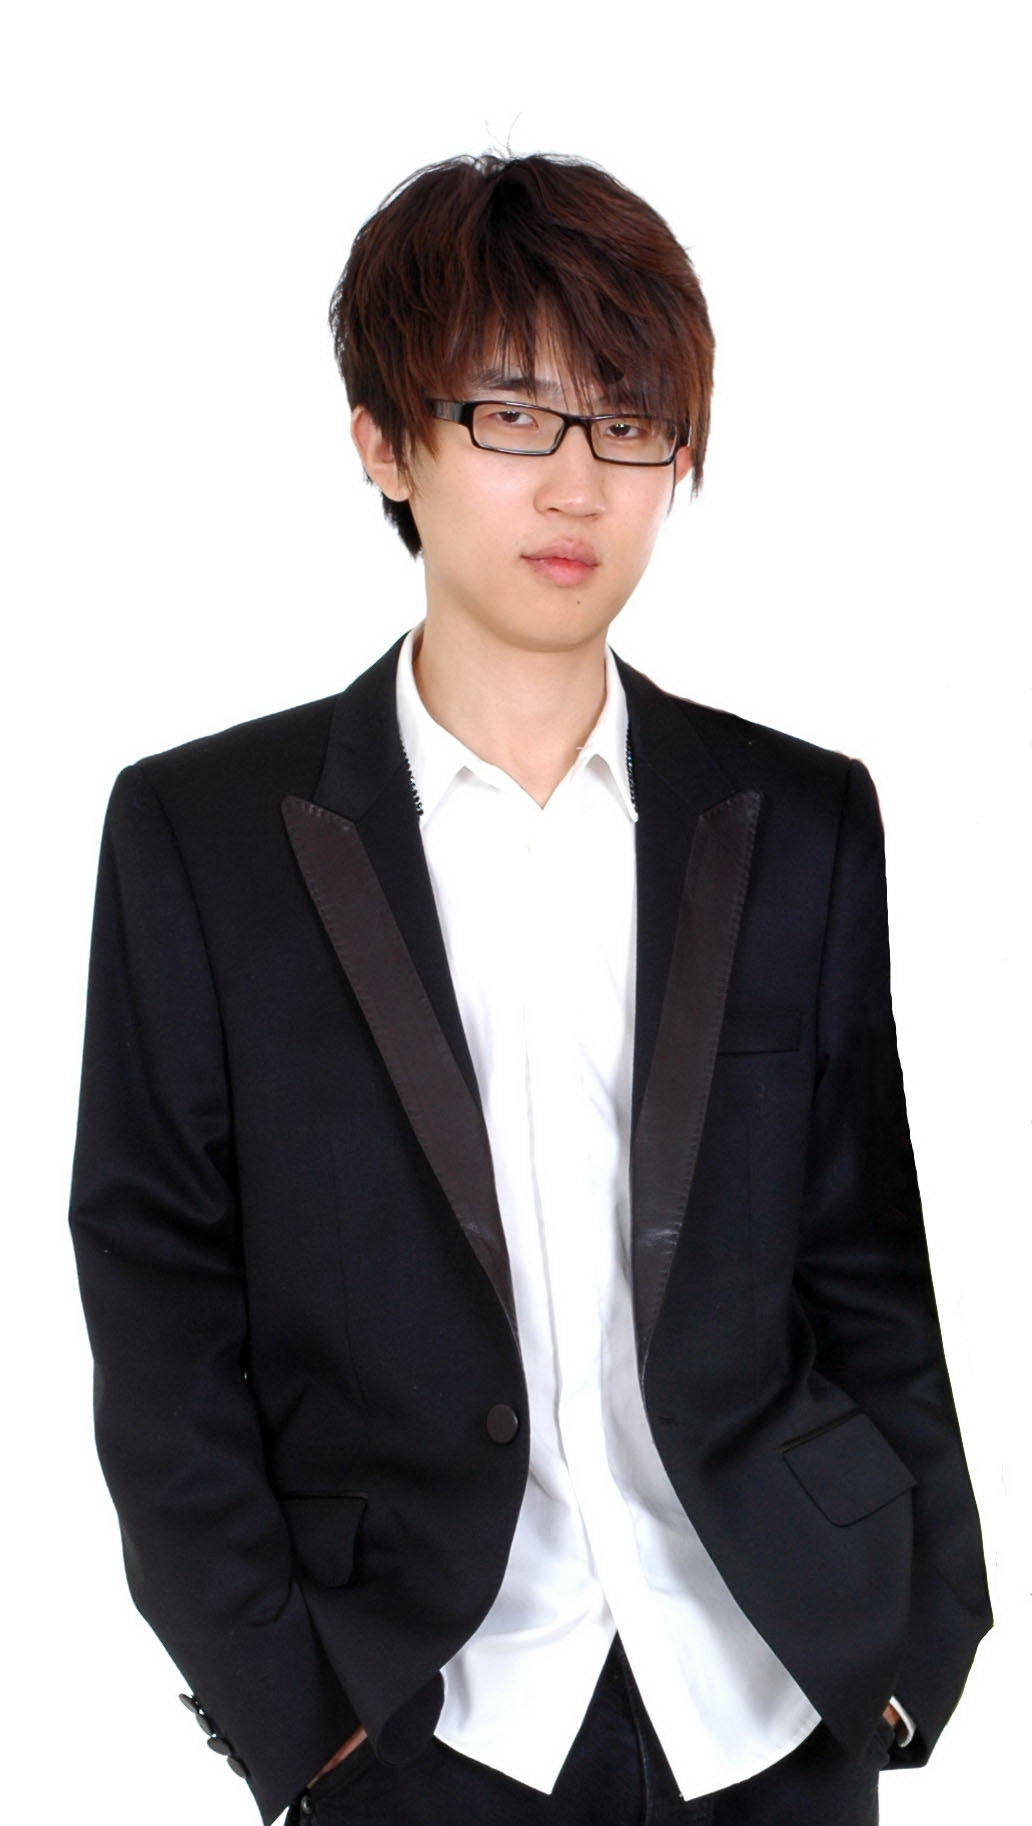 [New QIQ member]: Wang Peng